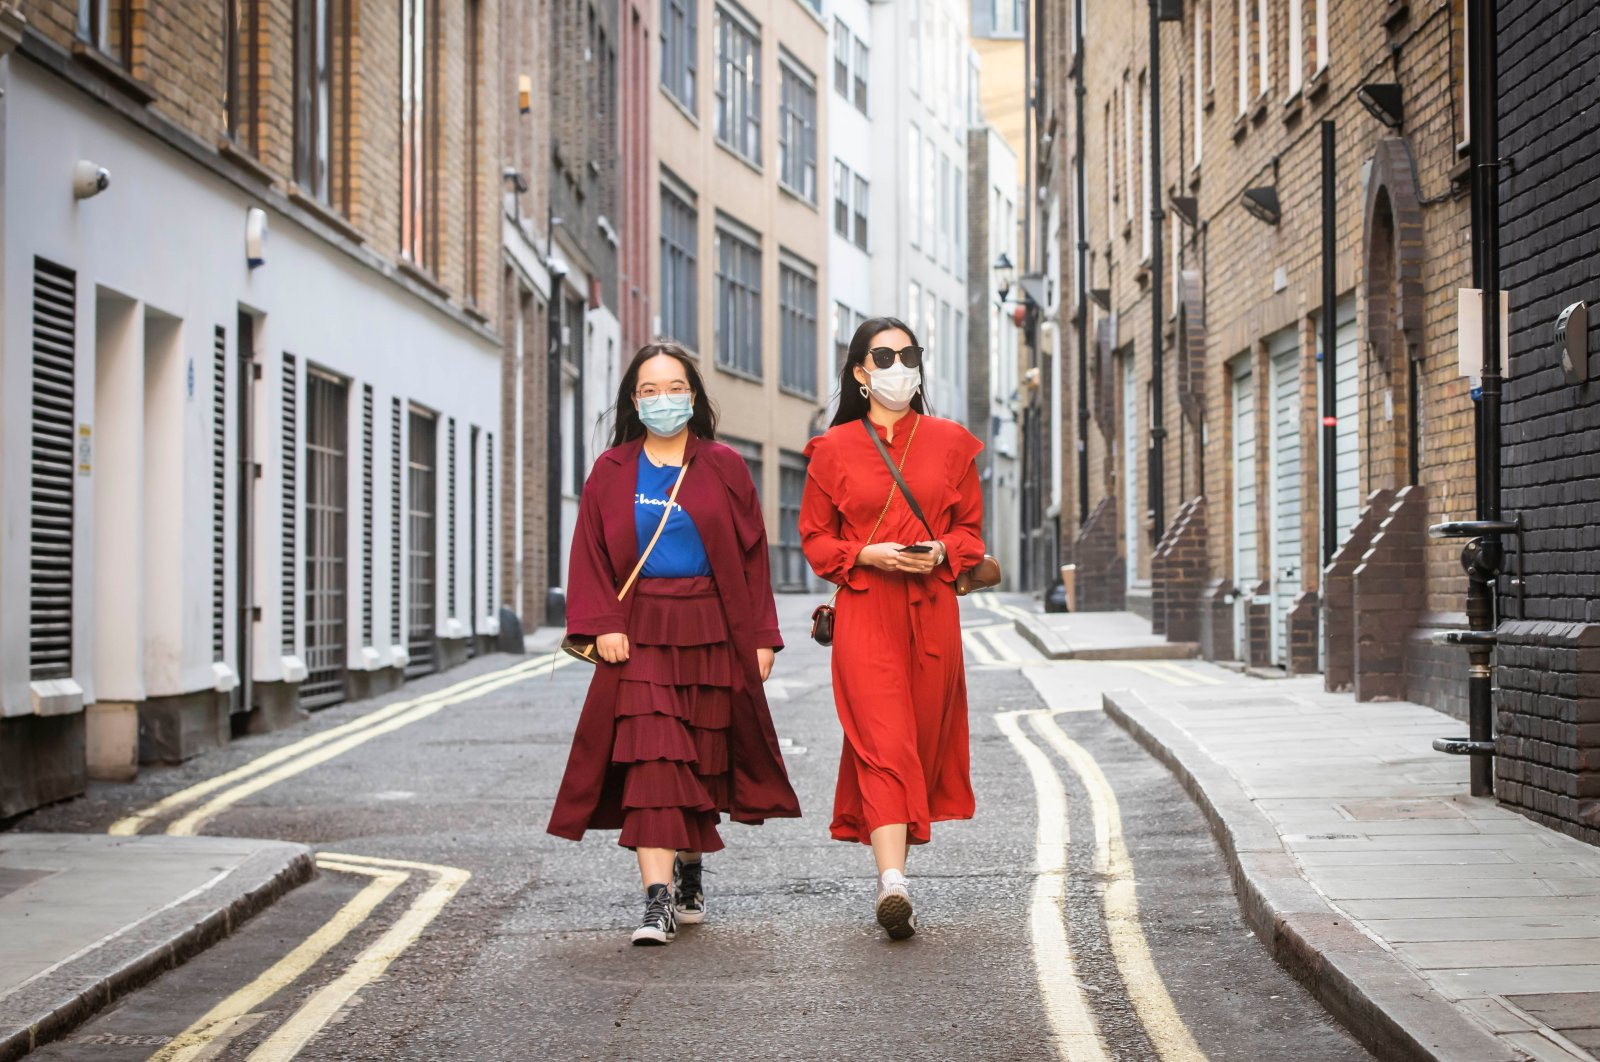 Two Chinese girls wearing masks walk down an empty street in Soho, London, Thursday, May 7, 2020. (PA via Reuters)